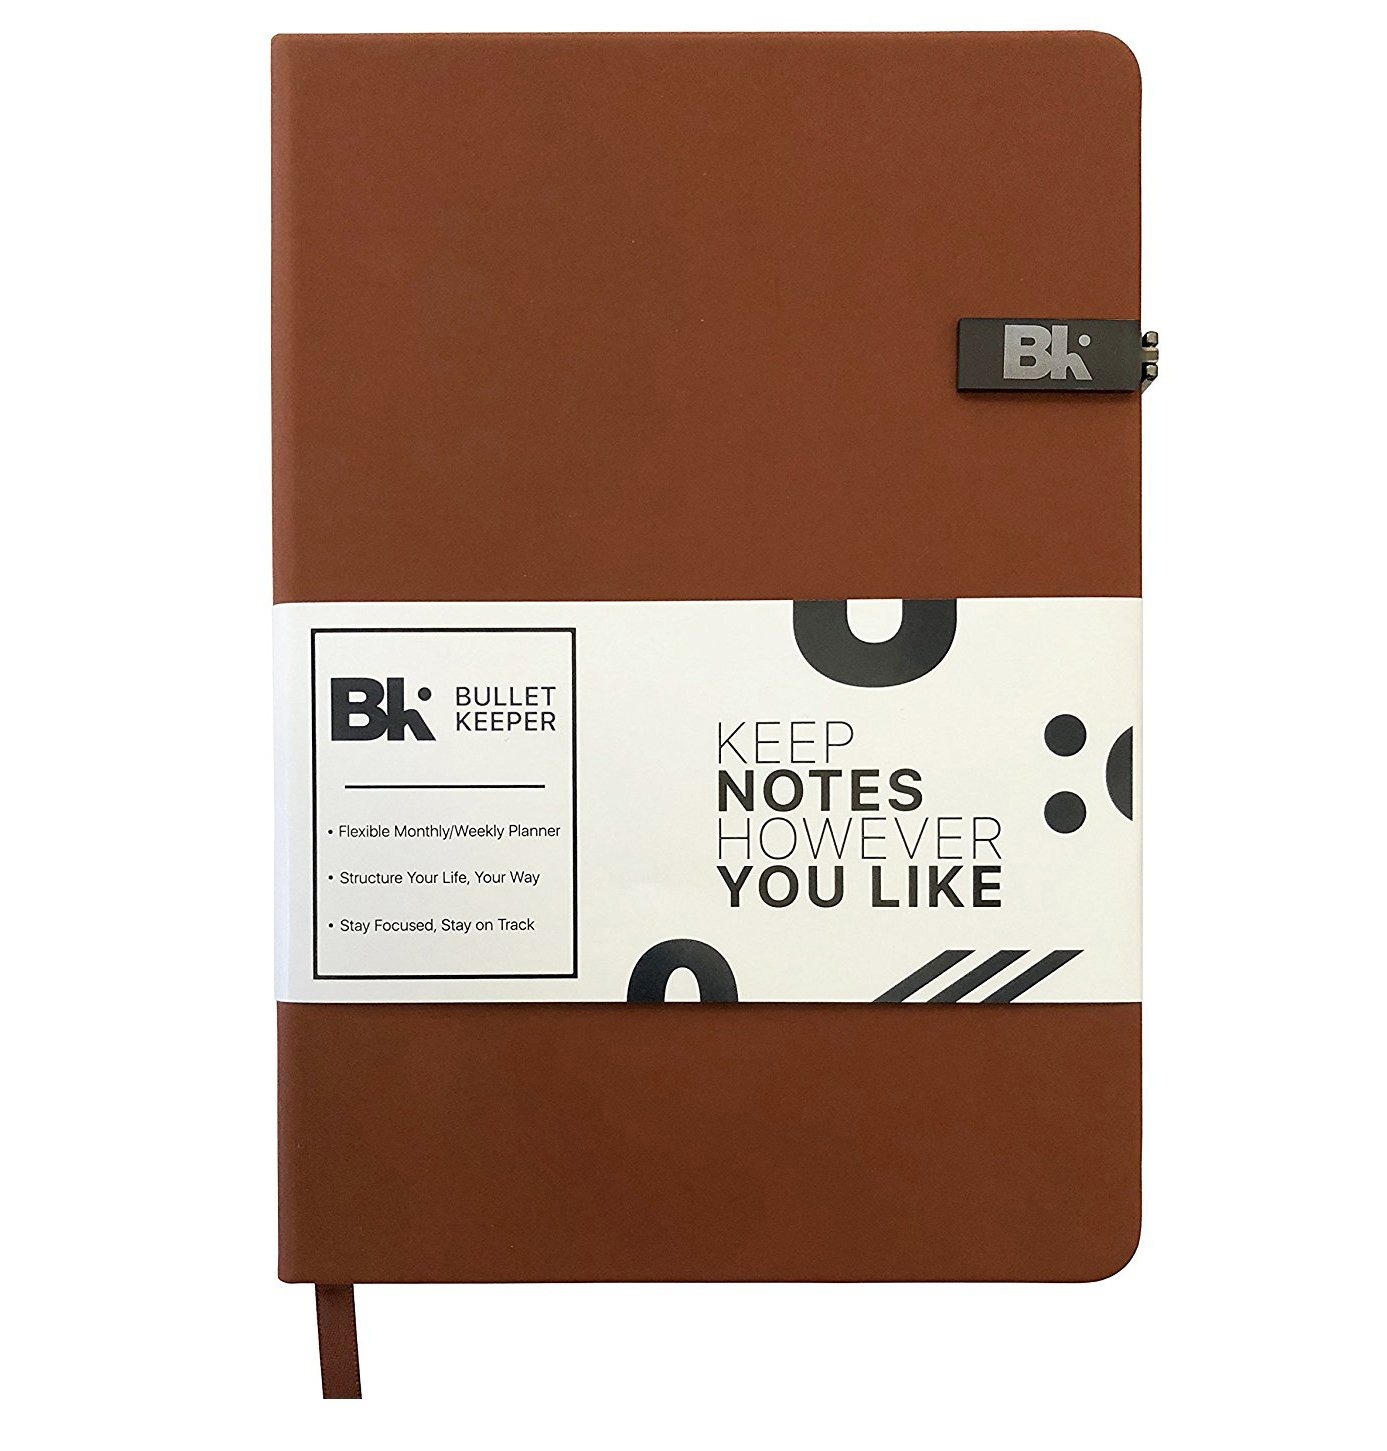 "Bullet Keeper   Daily Weekly Monthly Planner   Undated Student/School/Work Schedule Planner   A5 Dot Grid Notebook   Hardcover Leather Bullet Journal Personal Organizer   52 Week Journal   5.8 X 8.3"" by Bullet Keeper"